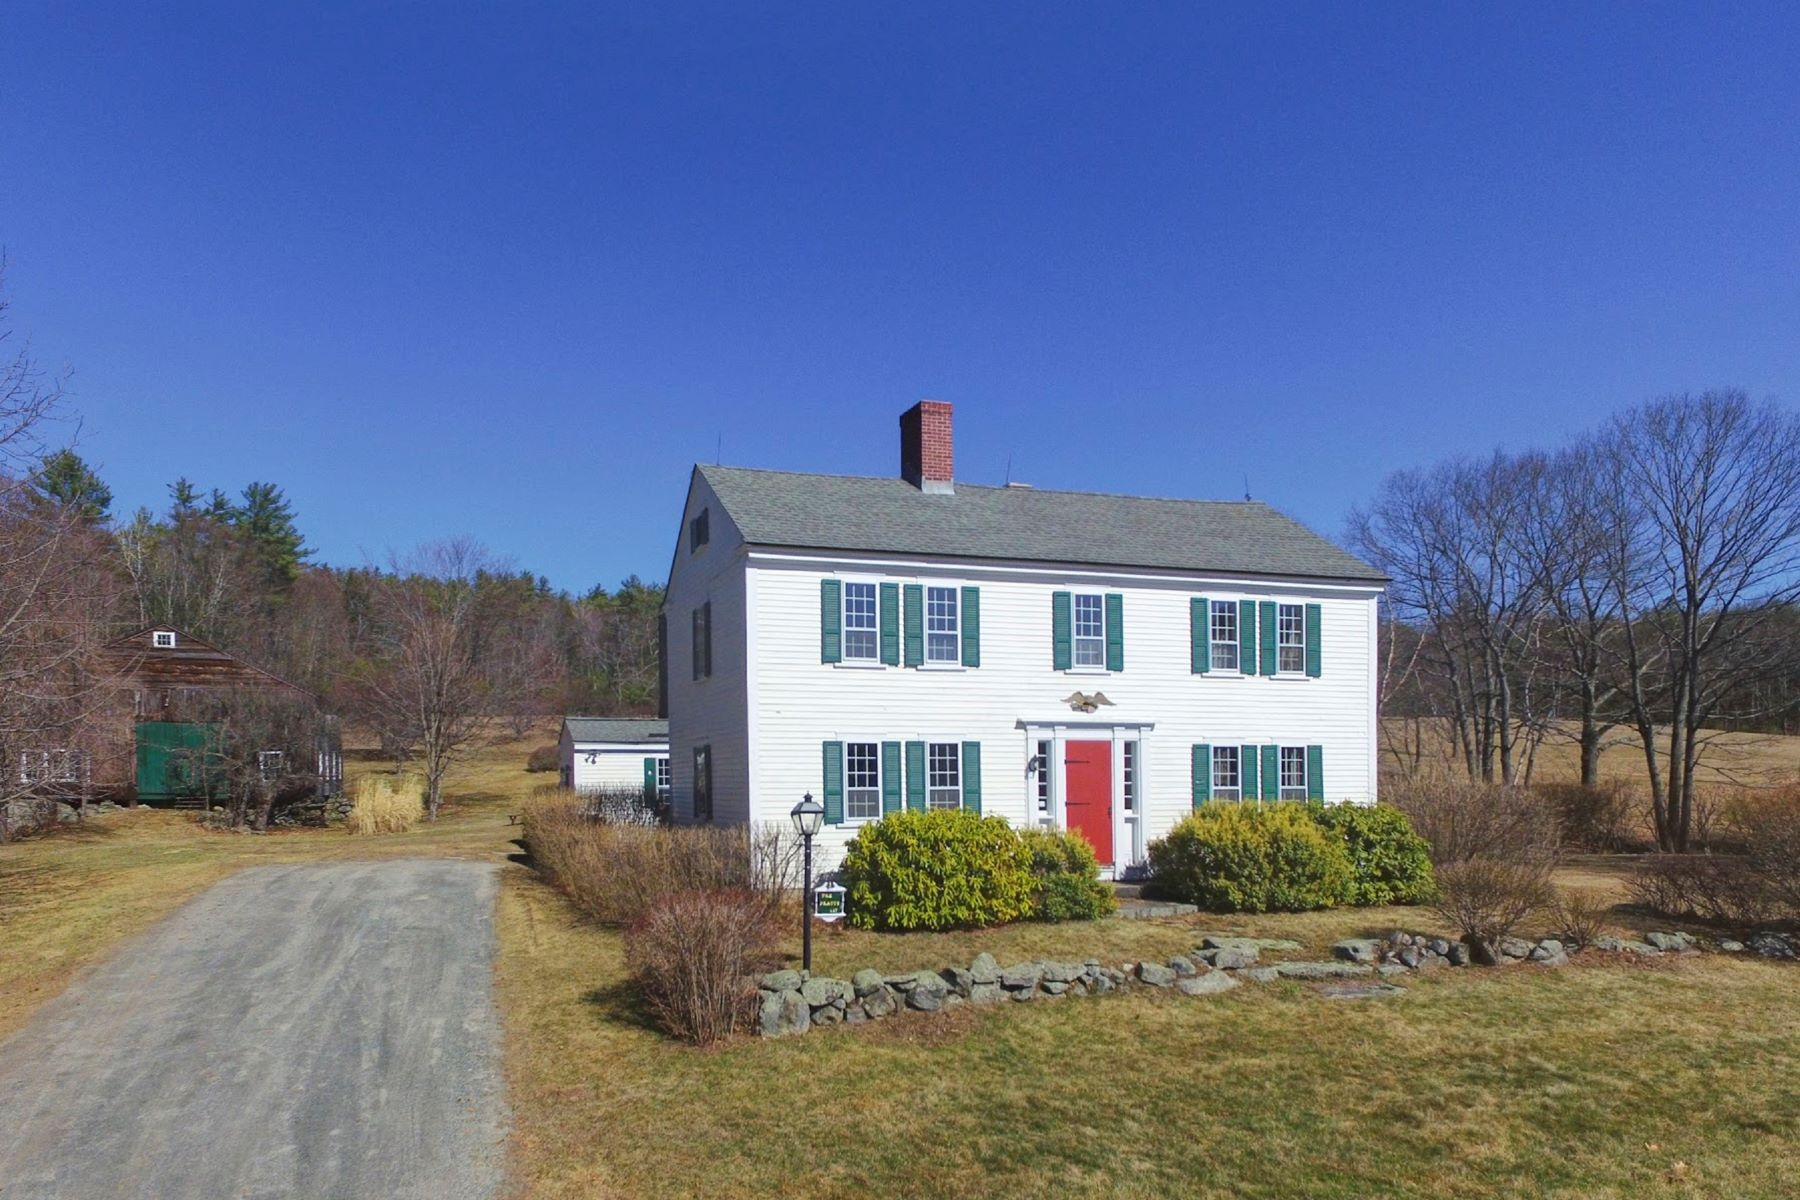 Single Family Homes for Sale at 117 Blaisdell Hill Road Sutton, New Hampshire 03221 United States